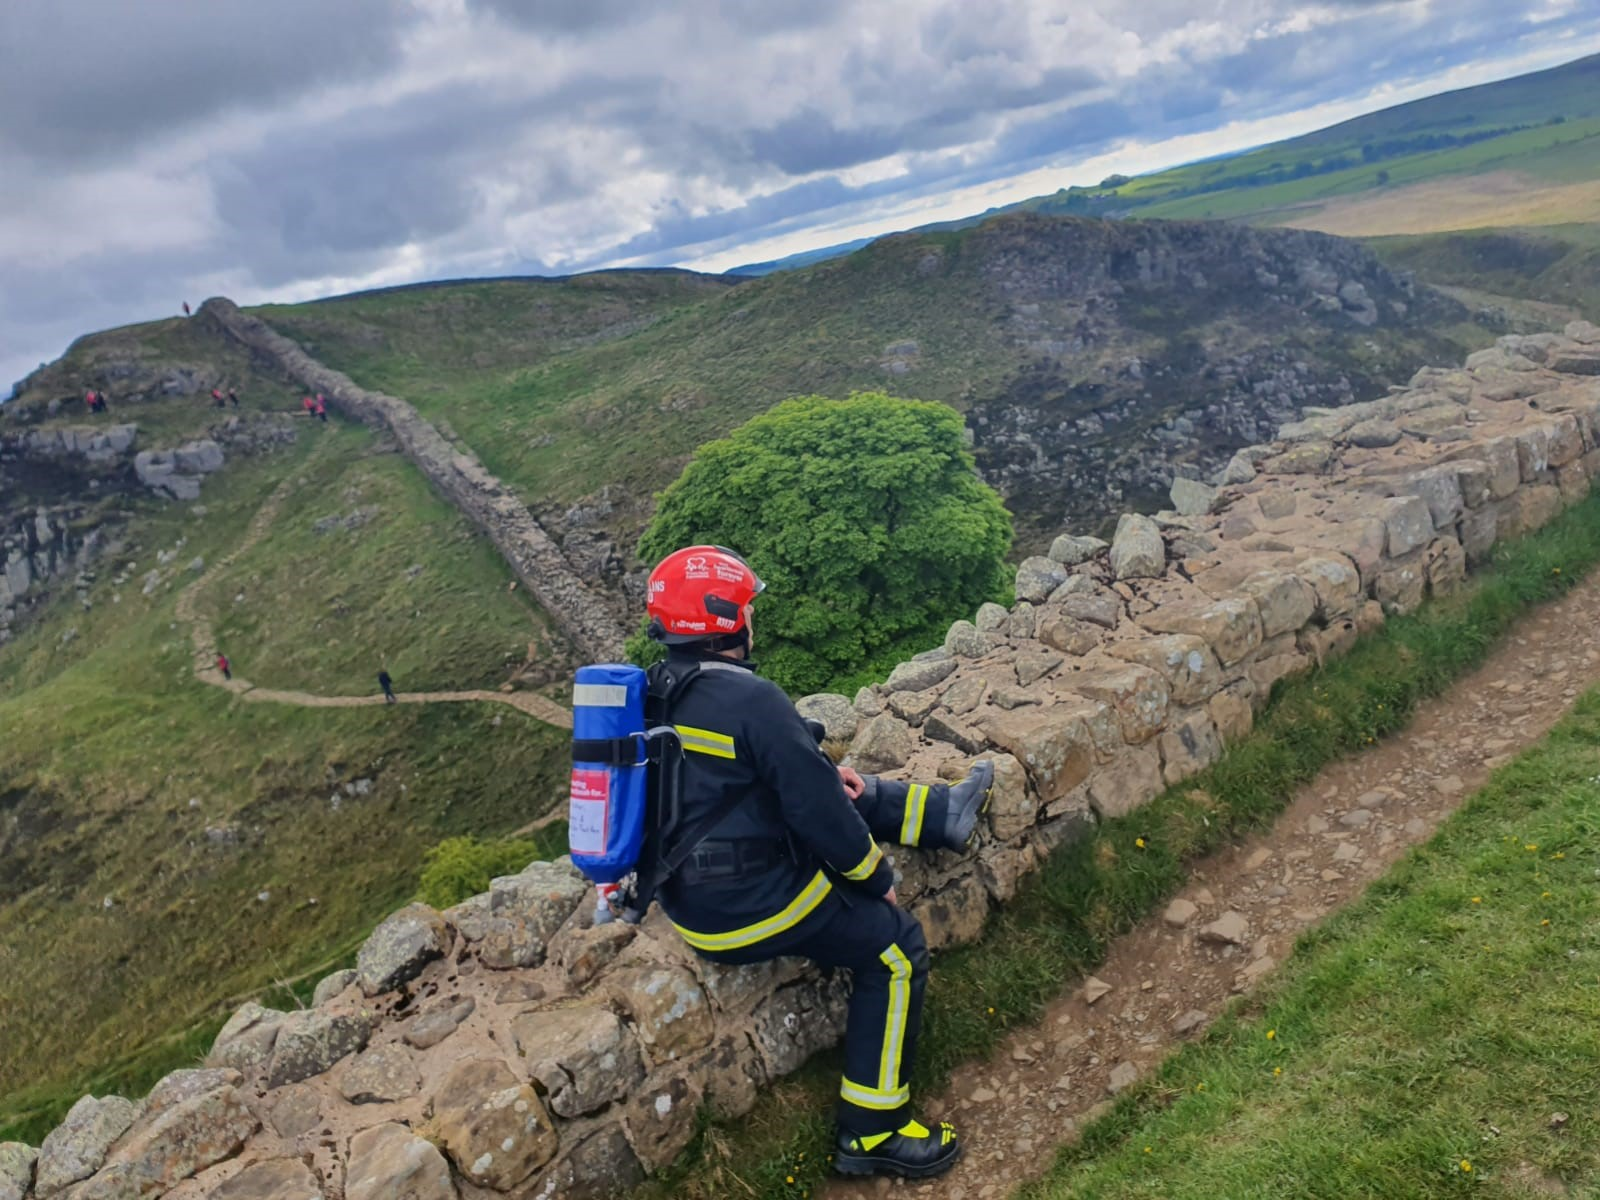 The ups and downs of trekking Hadrian's Wall in full fire kit